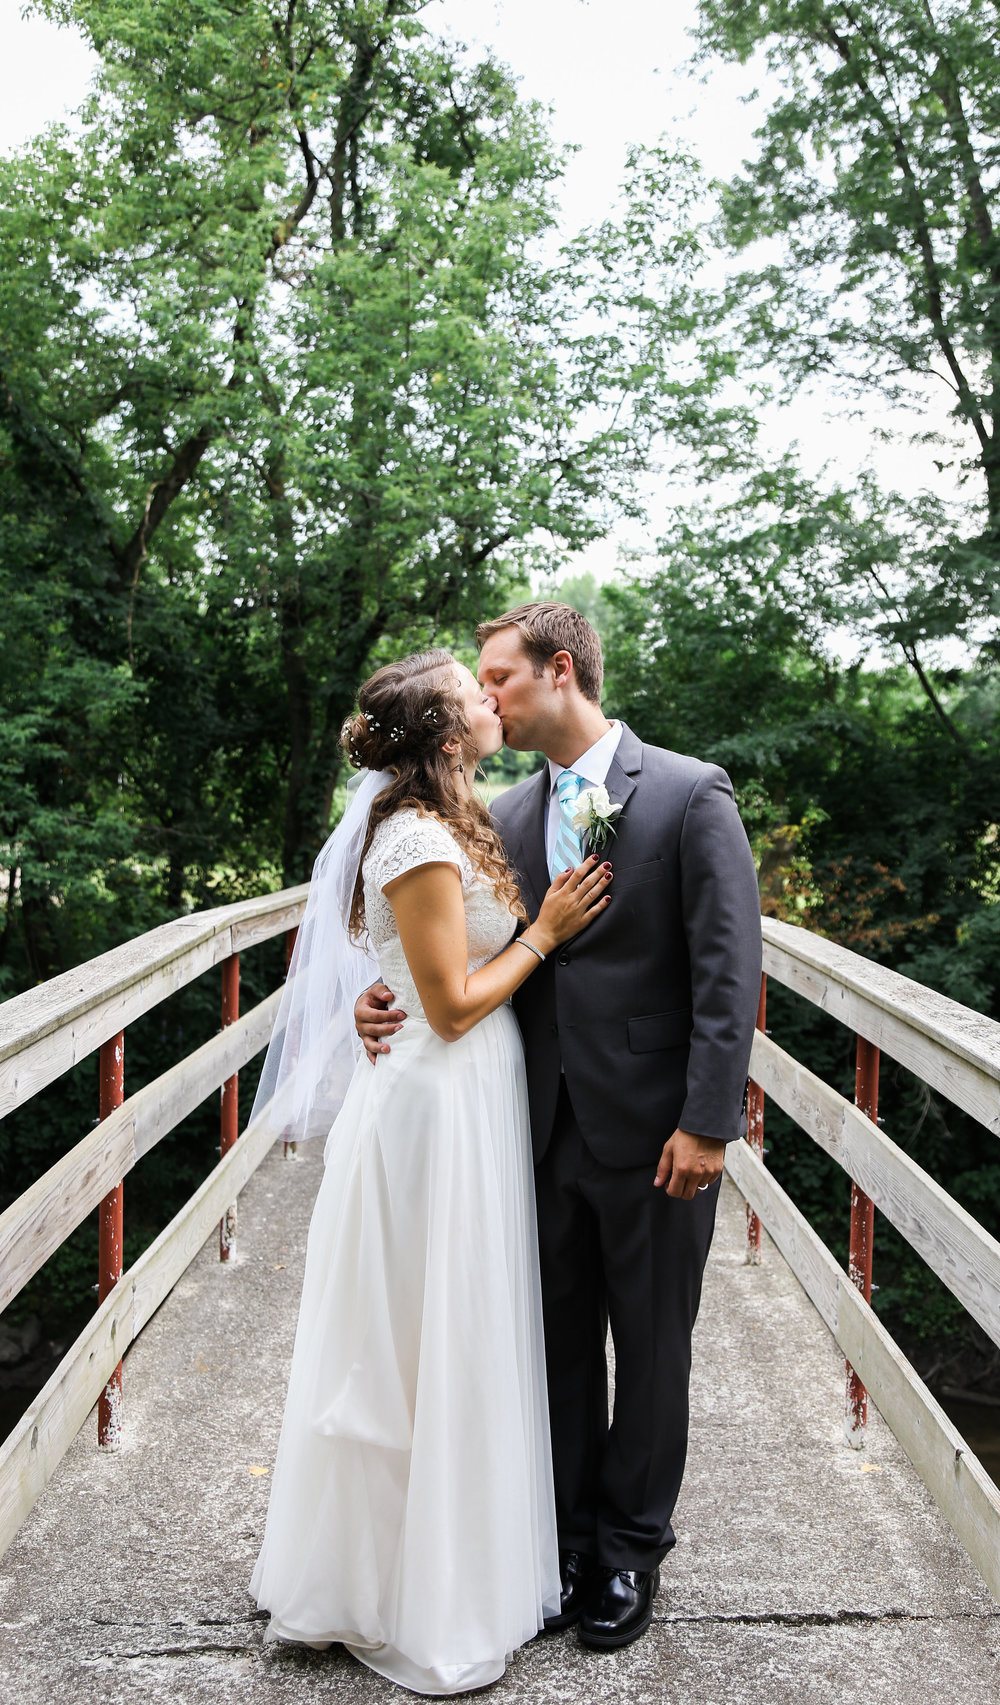 bride and groom bridge.jpg